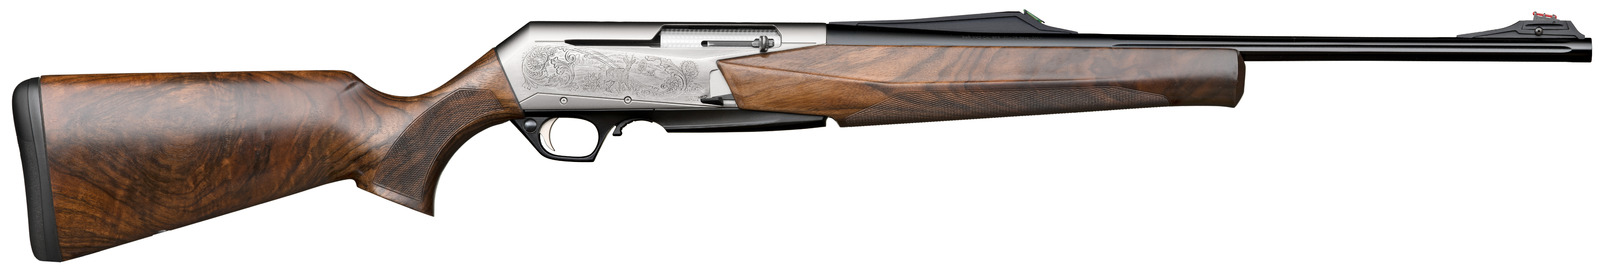 SEMIAUT.BROWNING MK3 ECLIPSE FLUTED 308W 2DBM S